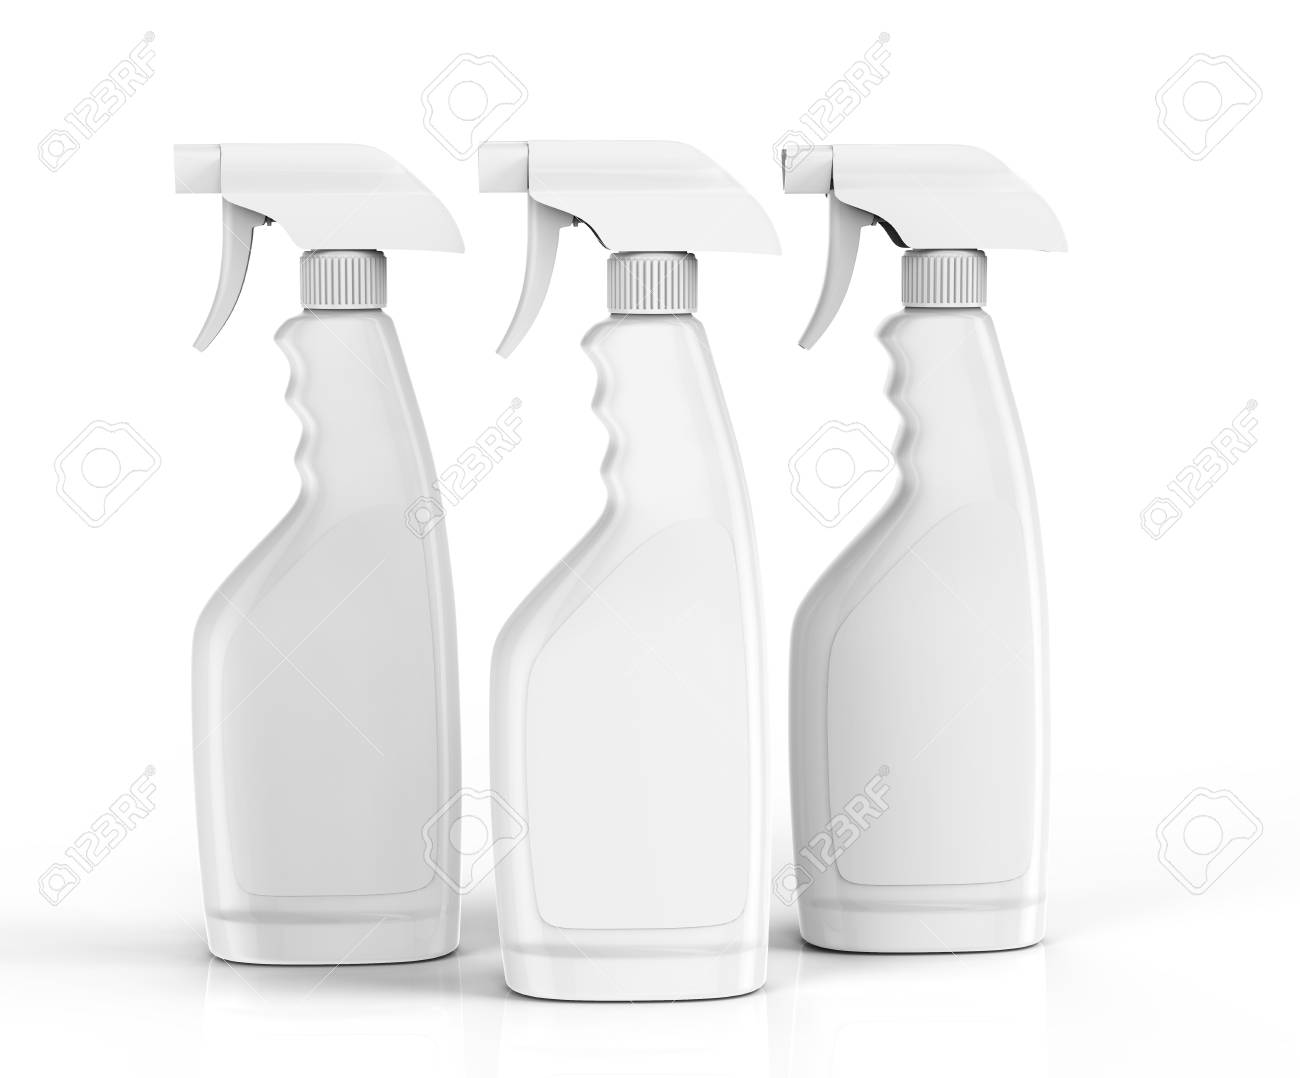 5d87c476d04f Glass cleaner mockup, blank white spray bottle set with label..